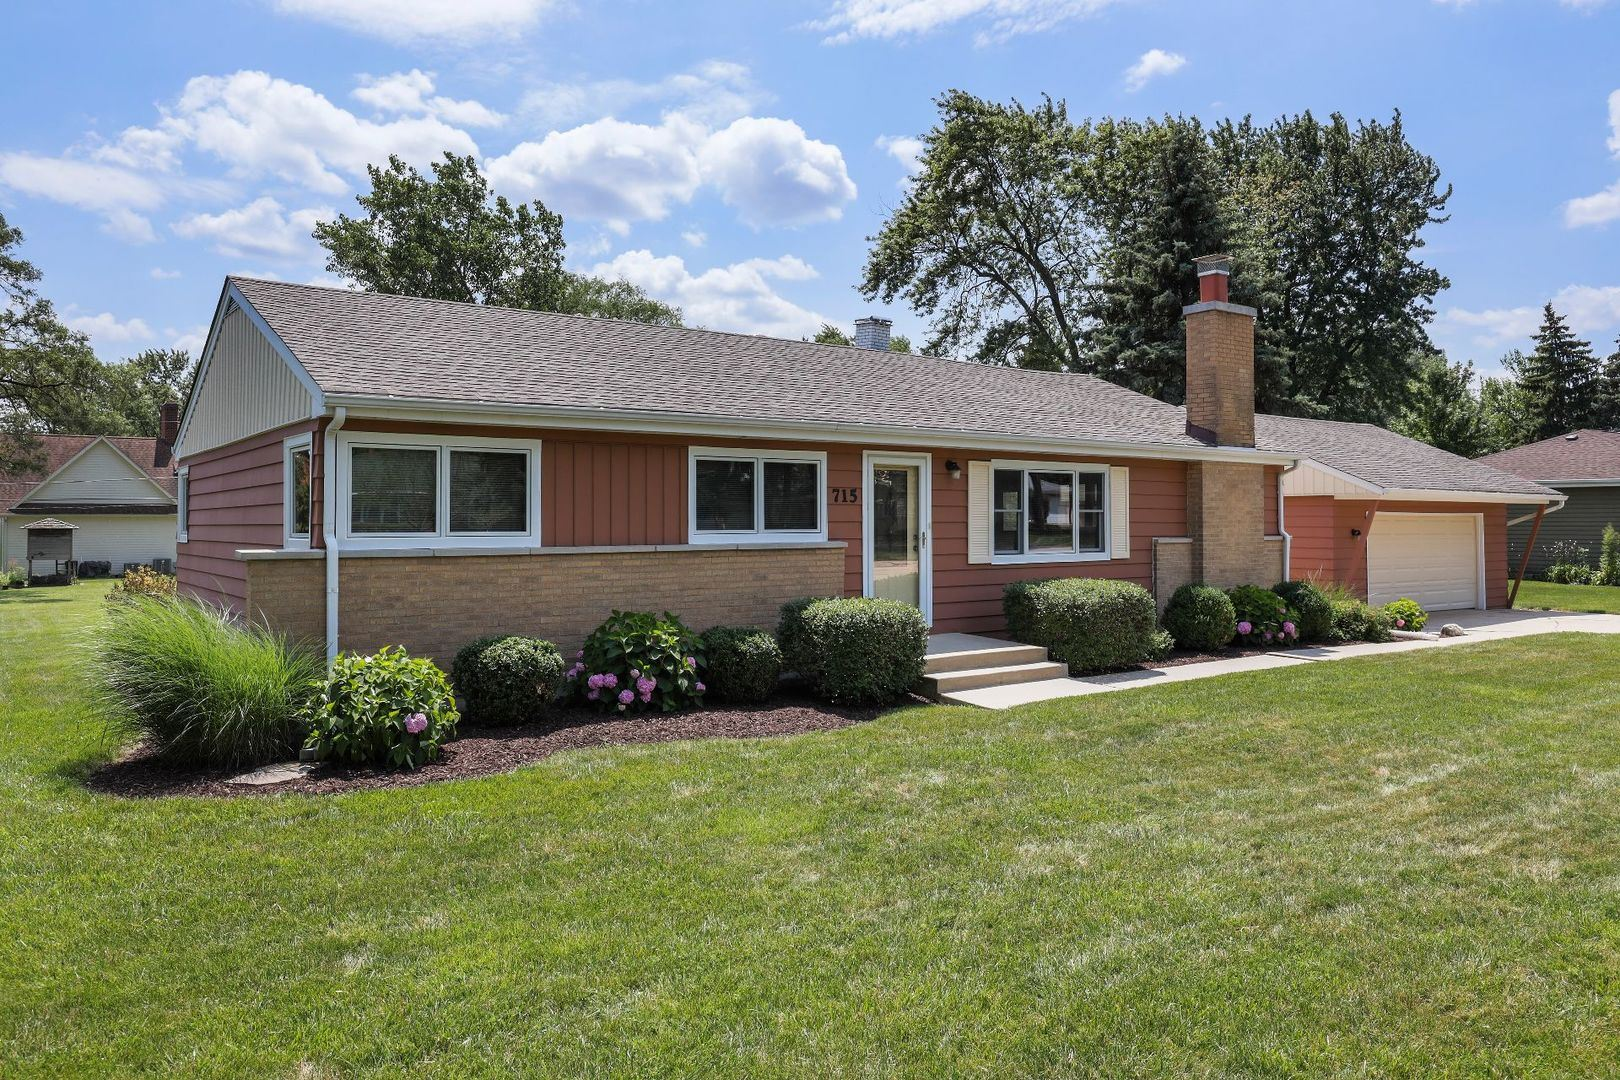 715 67TH Place, Willowbrook, IL 60527 - #: 11046527